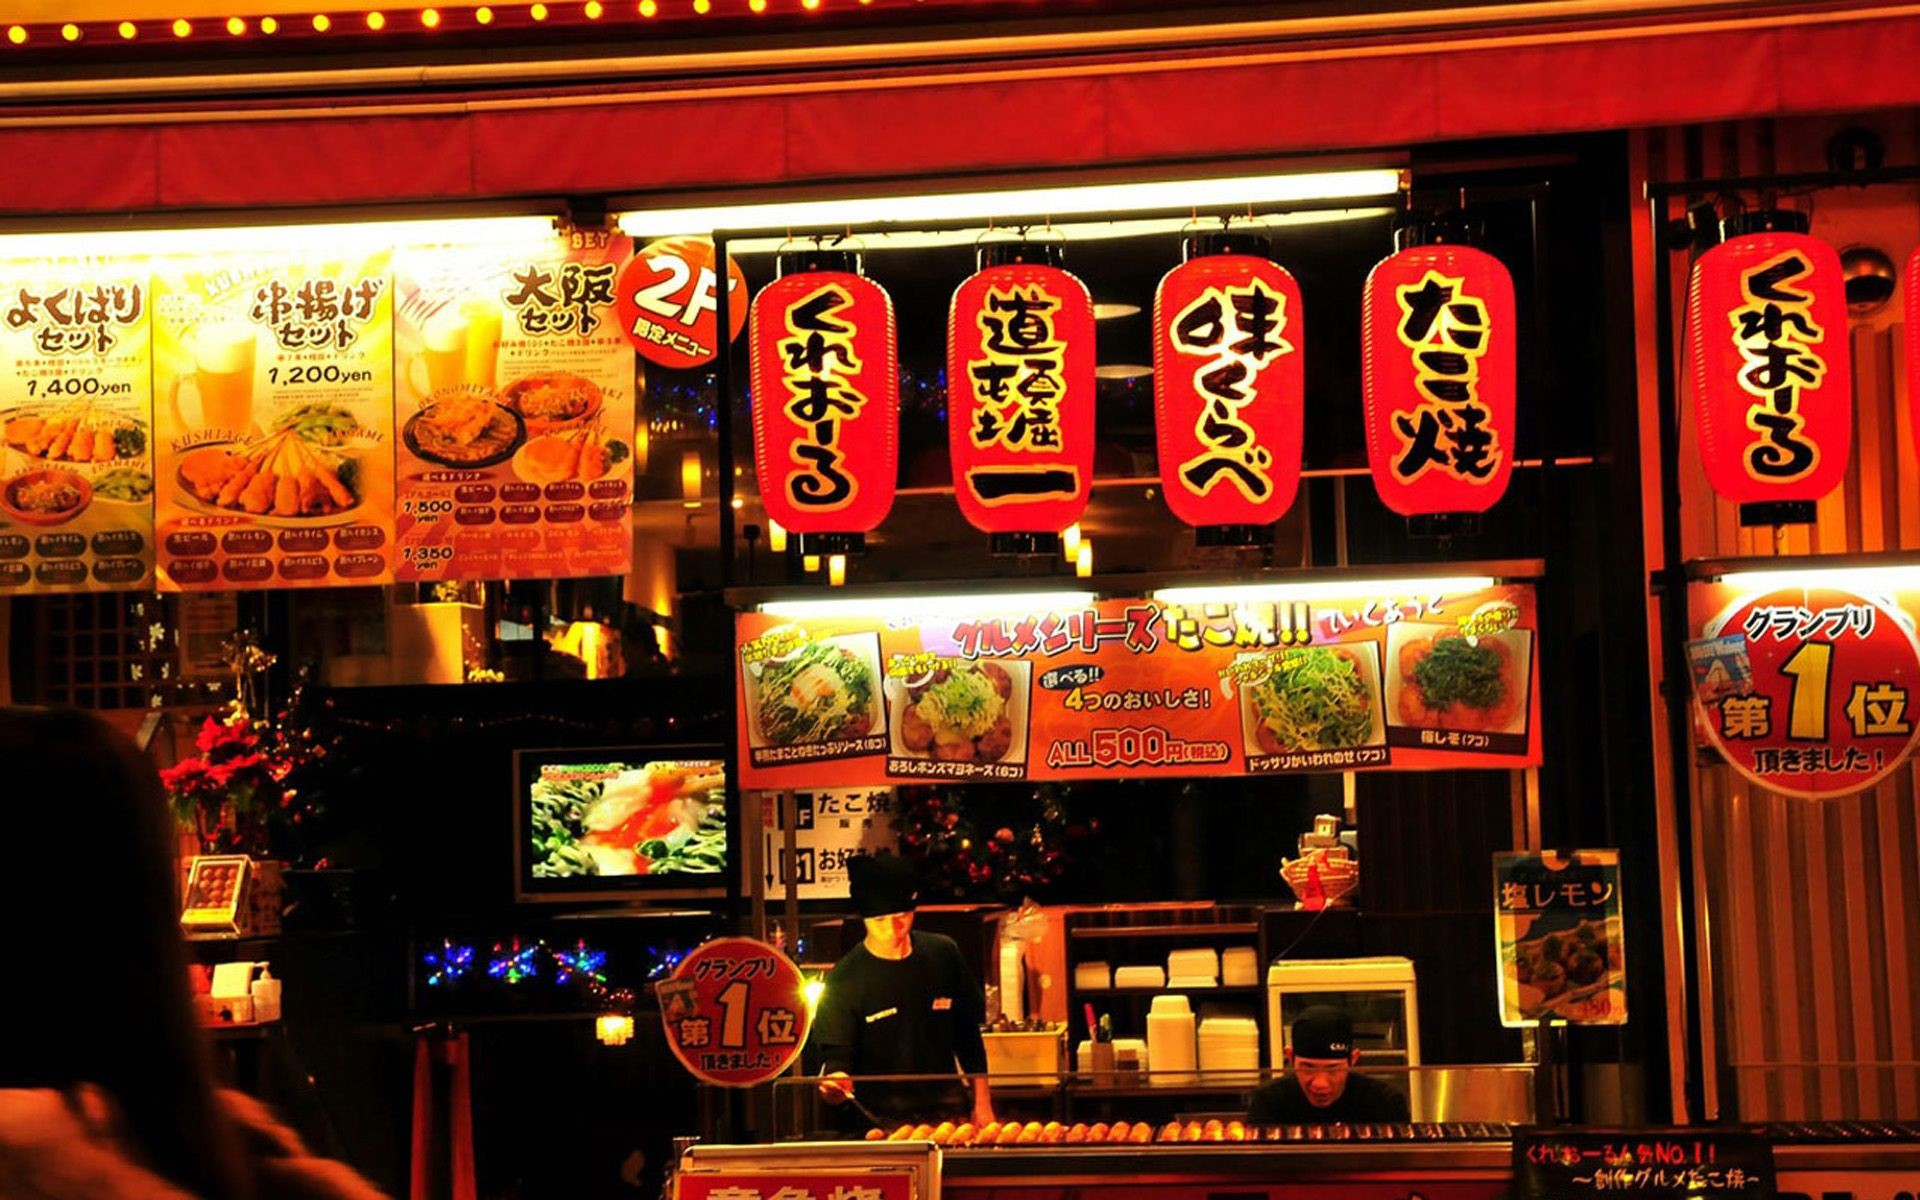 1920x1200 Osaka city street food at Wallpaper  | Hot HD Wallpaper